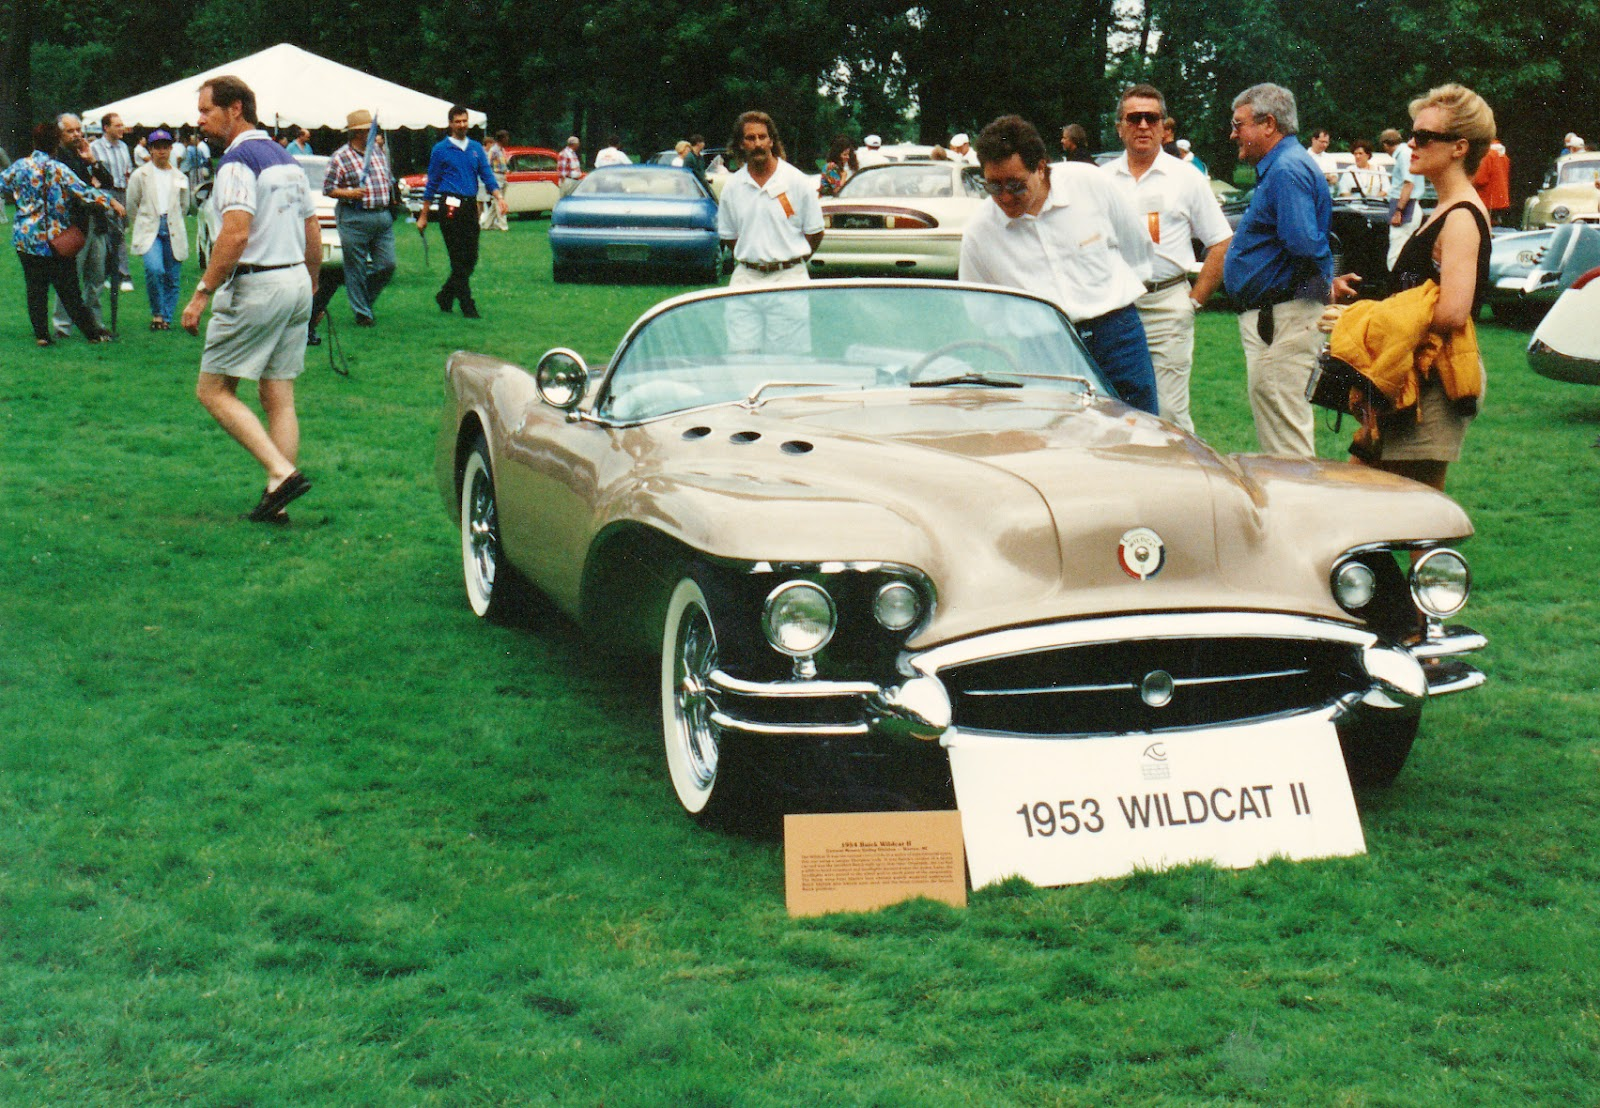 Reynolds Buick Gmc Blog Circle Of Dreams 1954 Wildcat Ii Concept The Was Built For 1953 Motorama